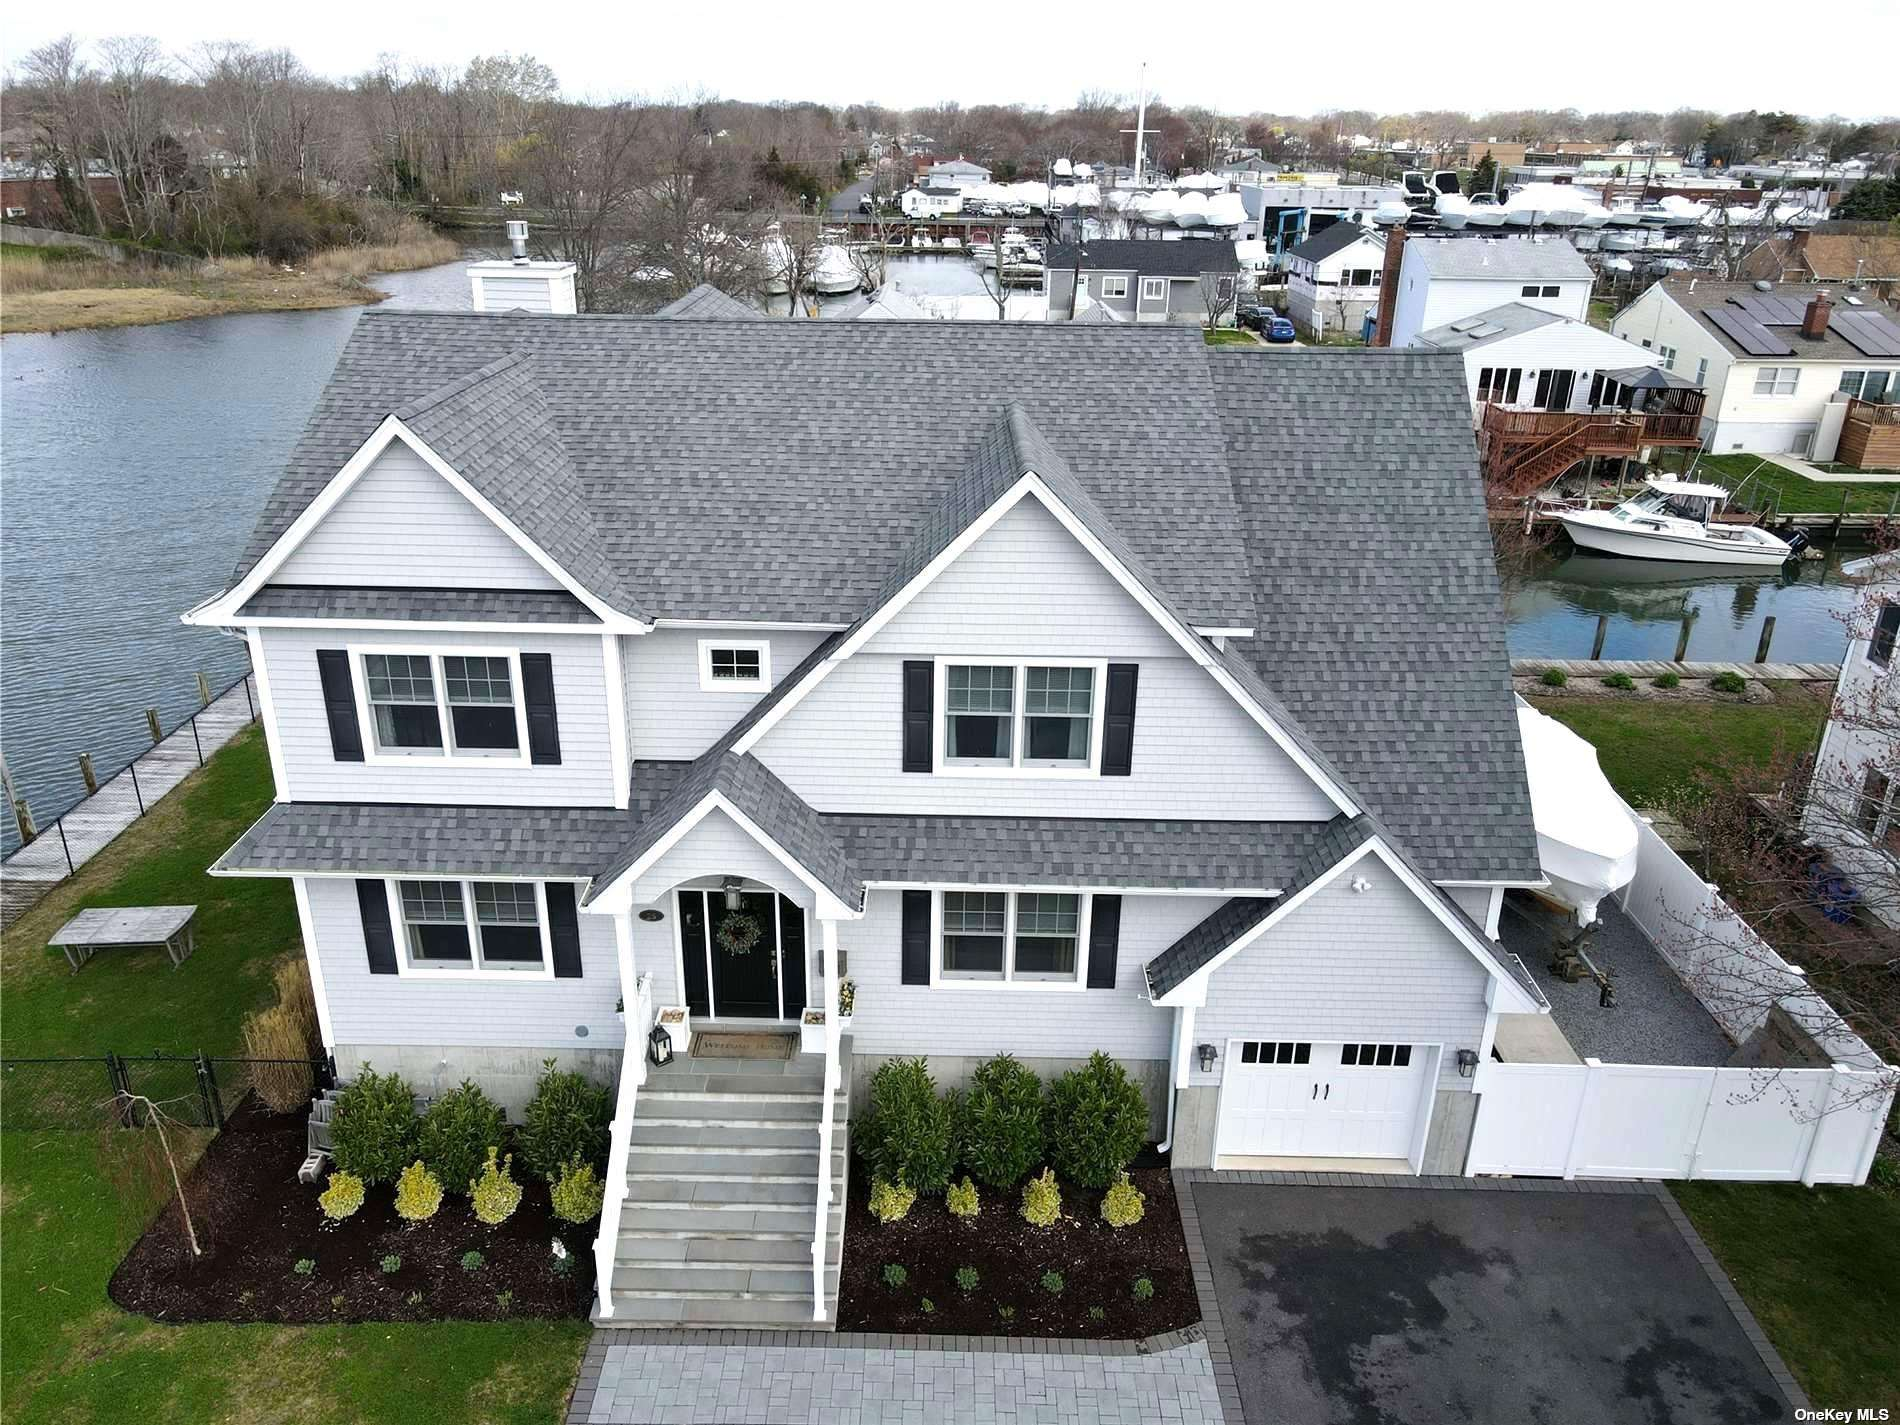 Gorgeous custom built (completed in 2017) 3 bed 2.5 bath colonial on the end of a dead end street in Amity Harbor with 200' feet of bulkheading on the canal.  Beautiful waterfront views from every room, open and airy floor plan with 9 foot ceilings, fenced yard plus garage, loads of storage in attic and dry crawl and super low flood insurance because of high elevation. Beautiful custom details include open eat in kitchen with birch cabinets, center island and quartz countertops, sliding barn doors in family room, double sided gas fireplace, radiant heated floors, unfinished 4th bedroom, exterior soffit lighting and central air to name a few.  Just in time for  summer boating season- must see home!